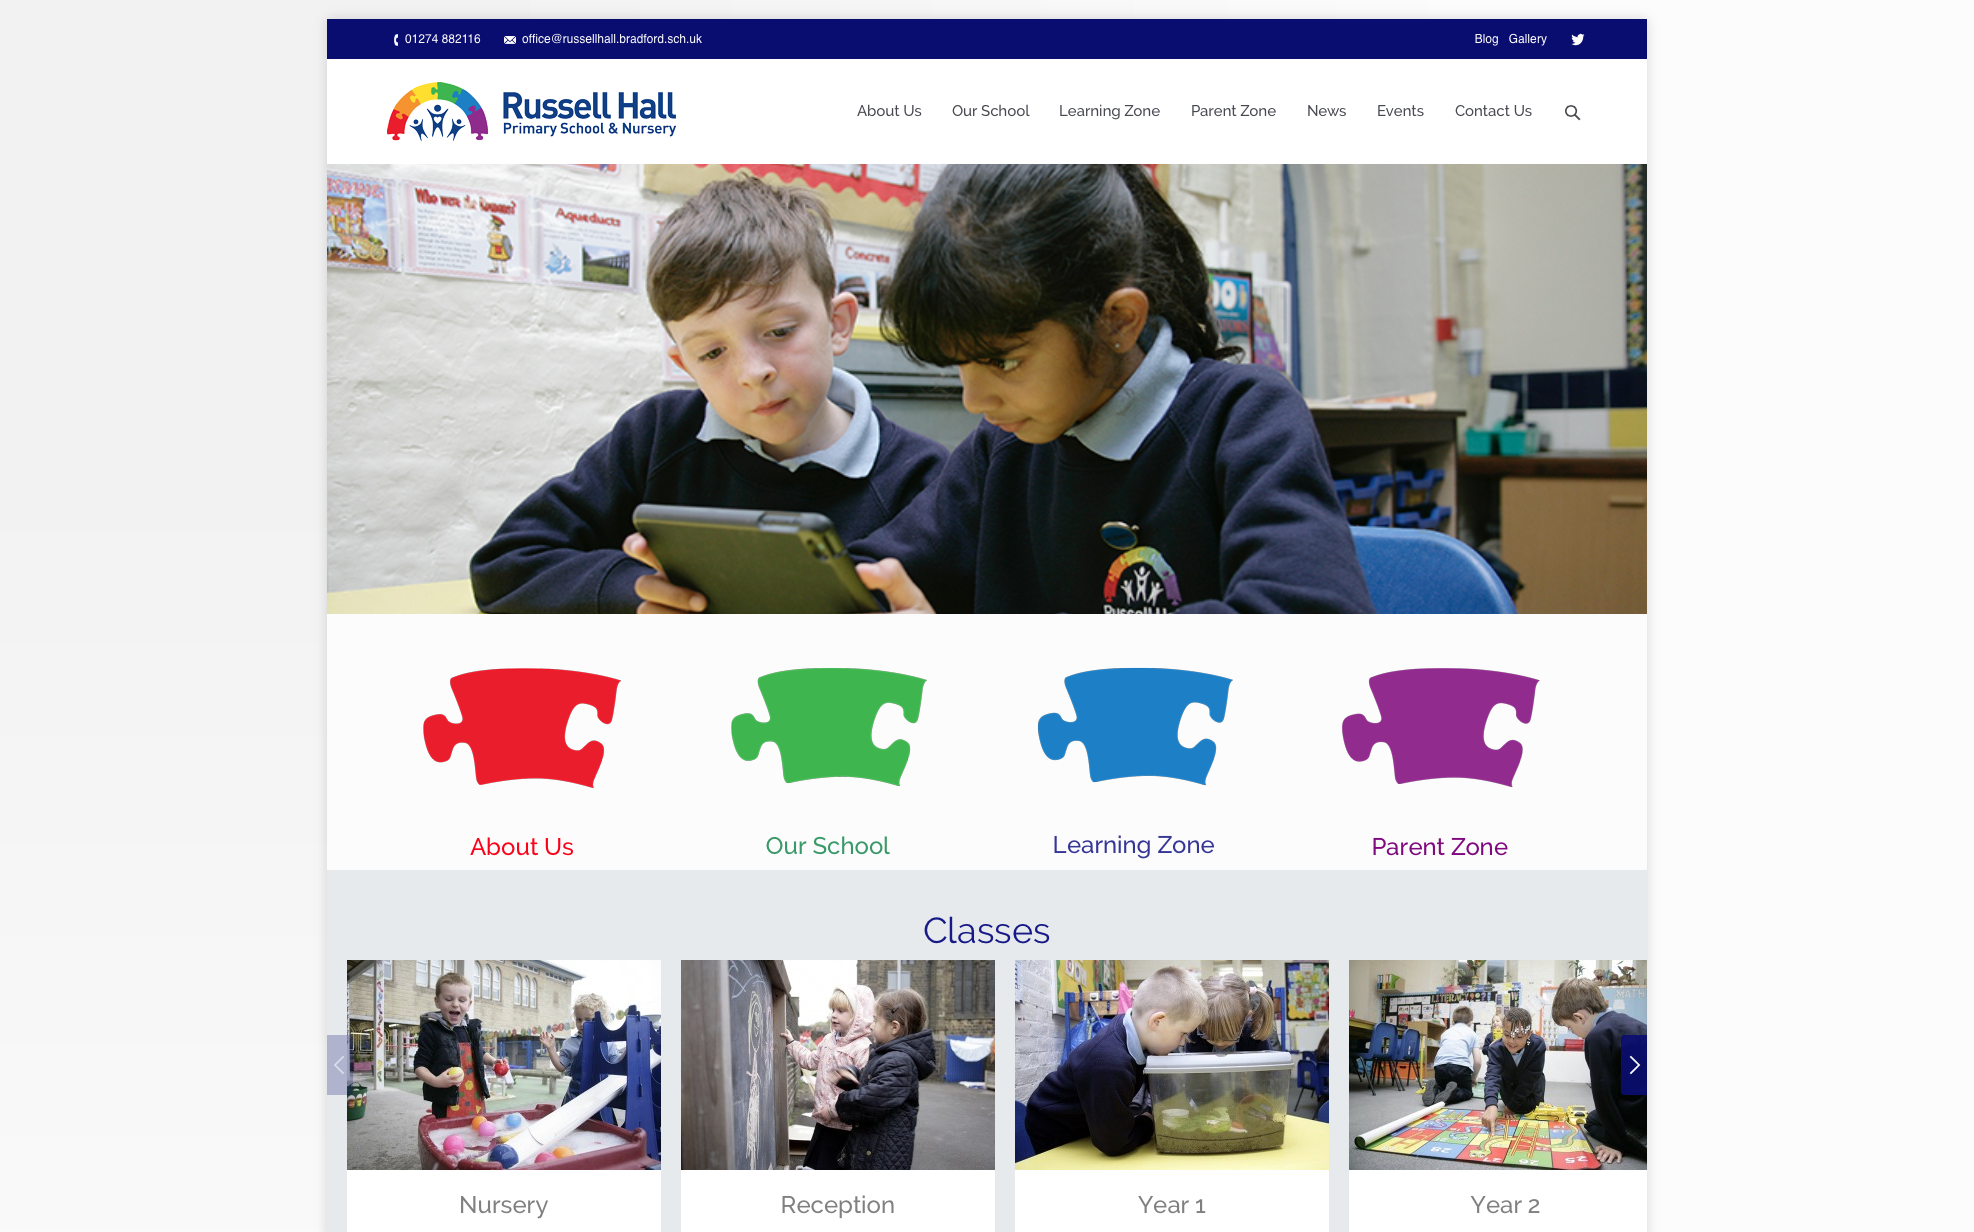 Russell Hall Website